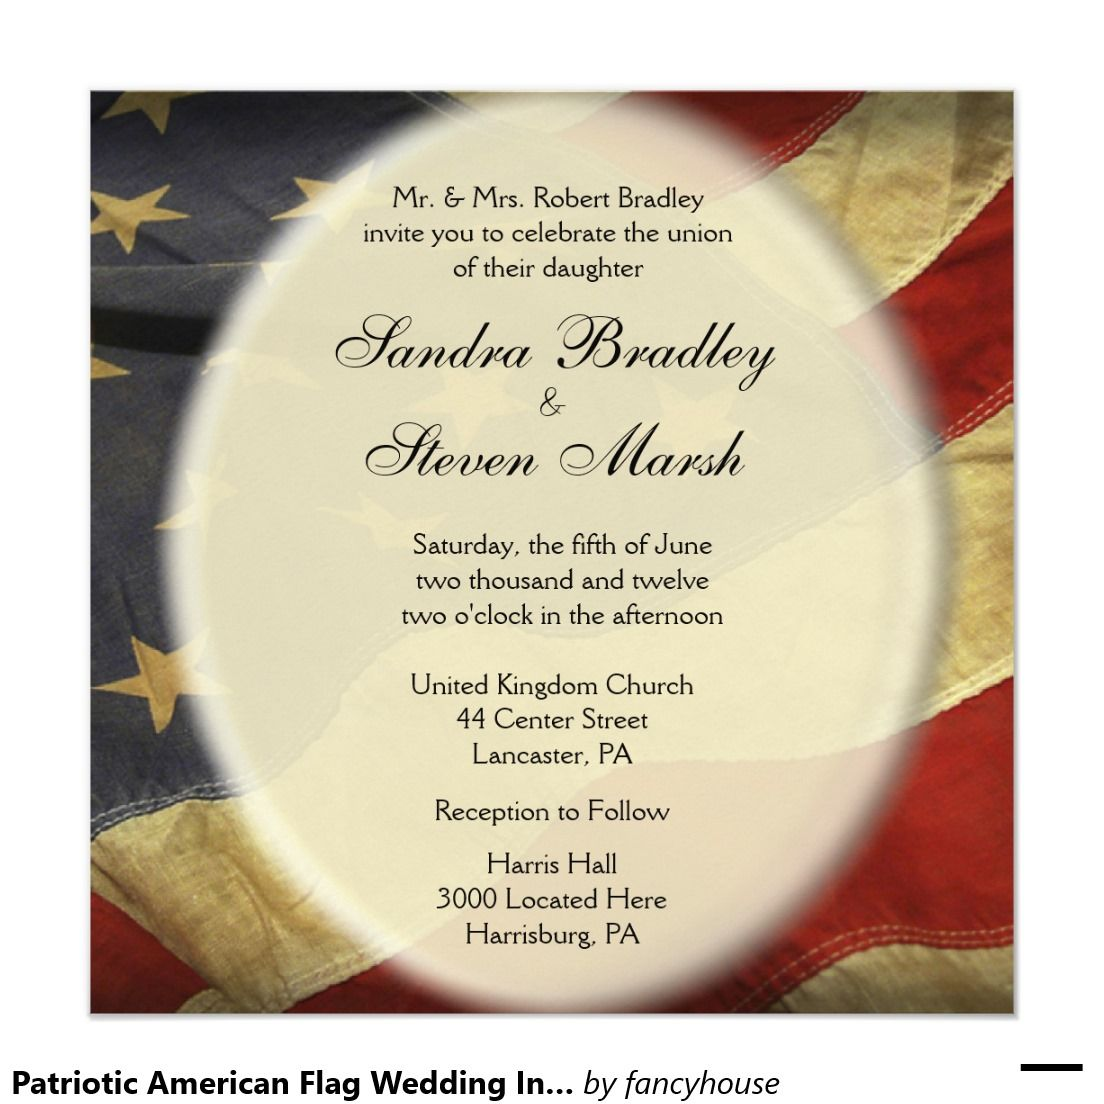 Patriotic American Flag Wedding Invitation | Military / July 4th ...